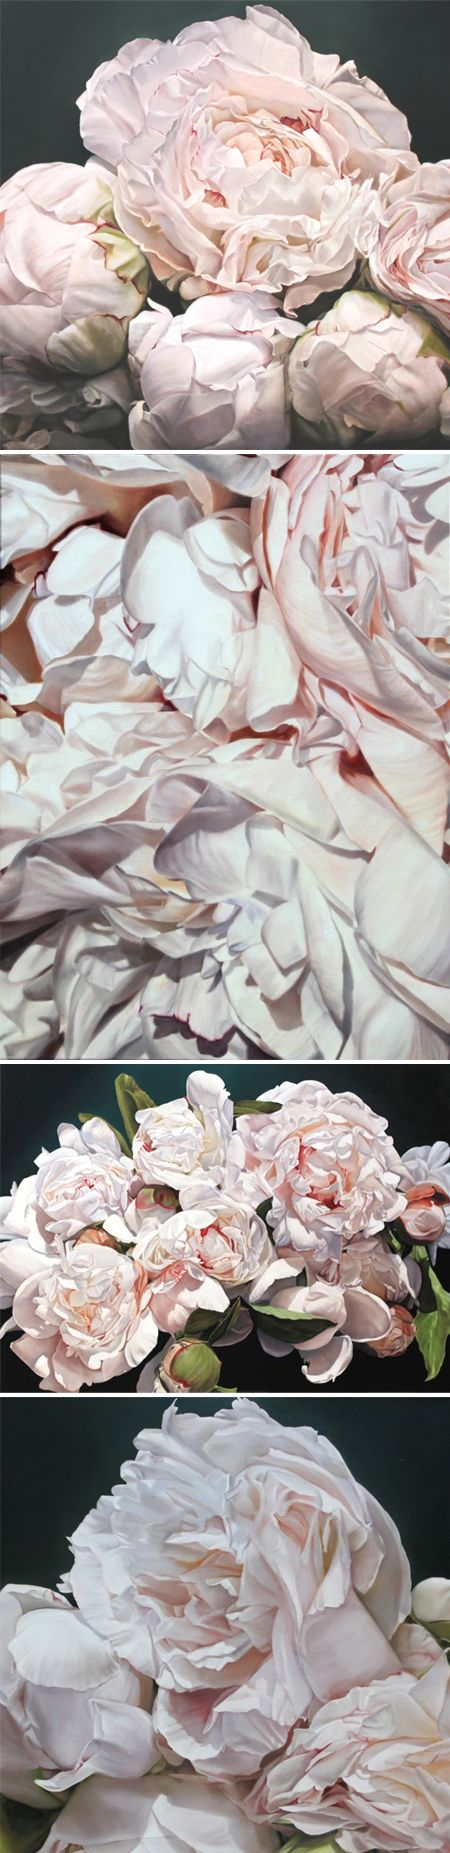 """thomasdarnell"" - I'm in love... These are the most gorgeous, glorious peonies you'll ever see - I can smell'em they're that good... :)"